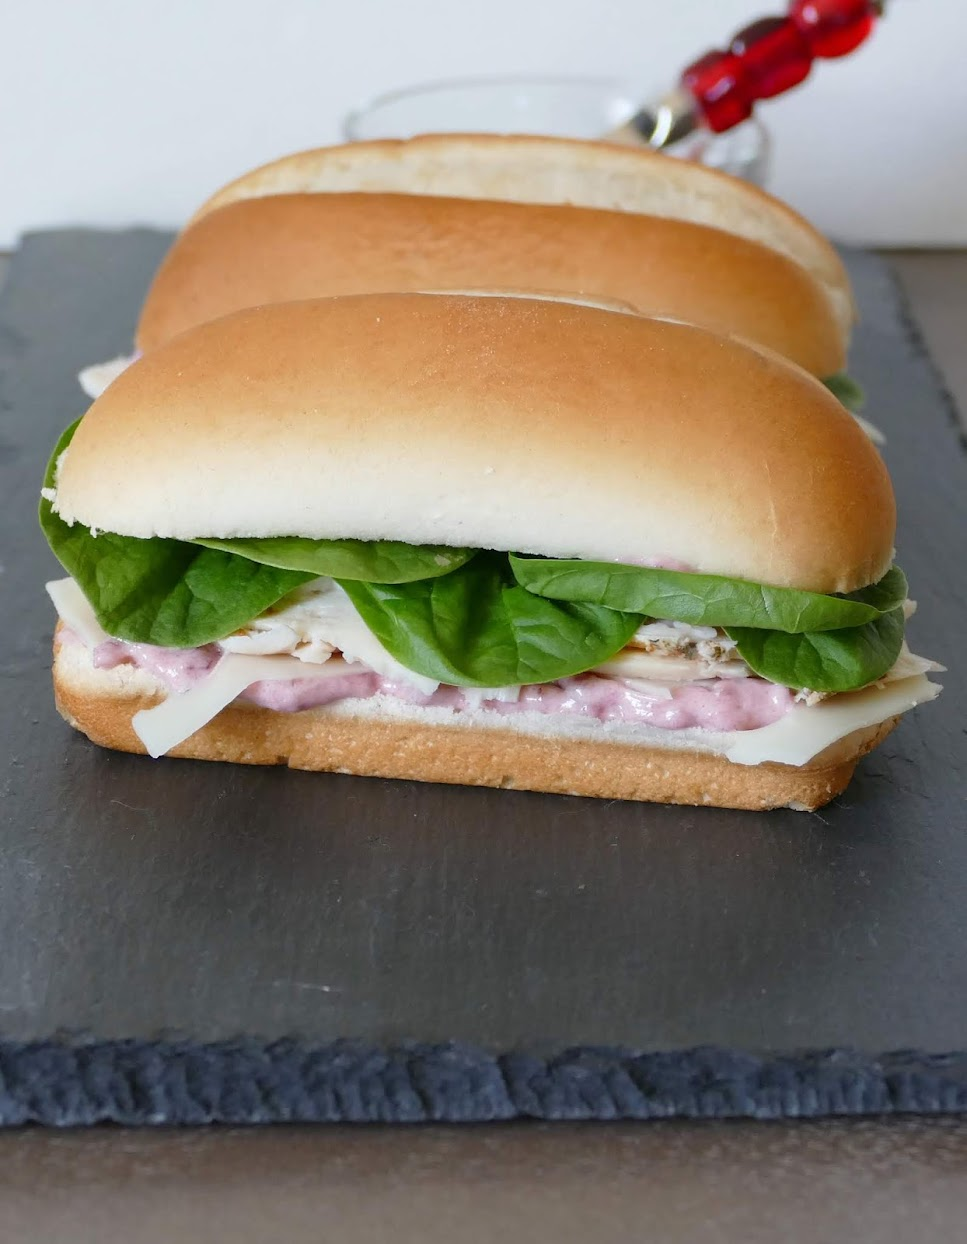 Use your leftover Thanksgiving or Christmas turkey, or deli turkey in this delicious sandwich! It's simple to make and tastes great with the cranberry mayo, spinach, turkey and swiss cheese! Make it for lunch or serve at your next game day party.